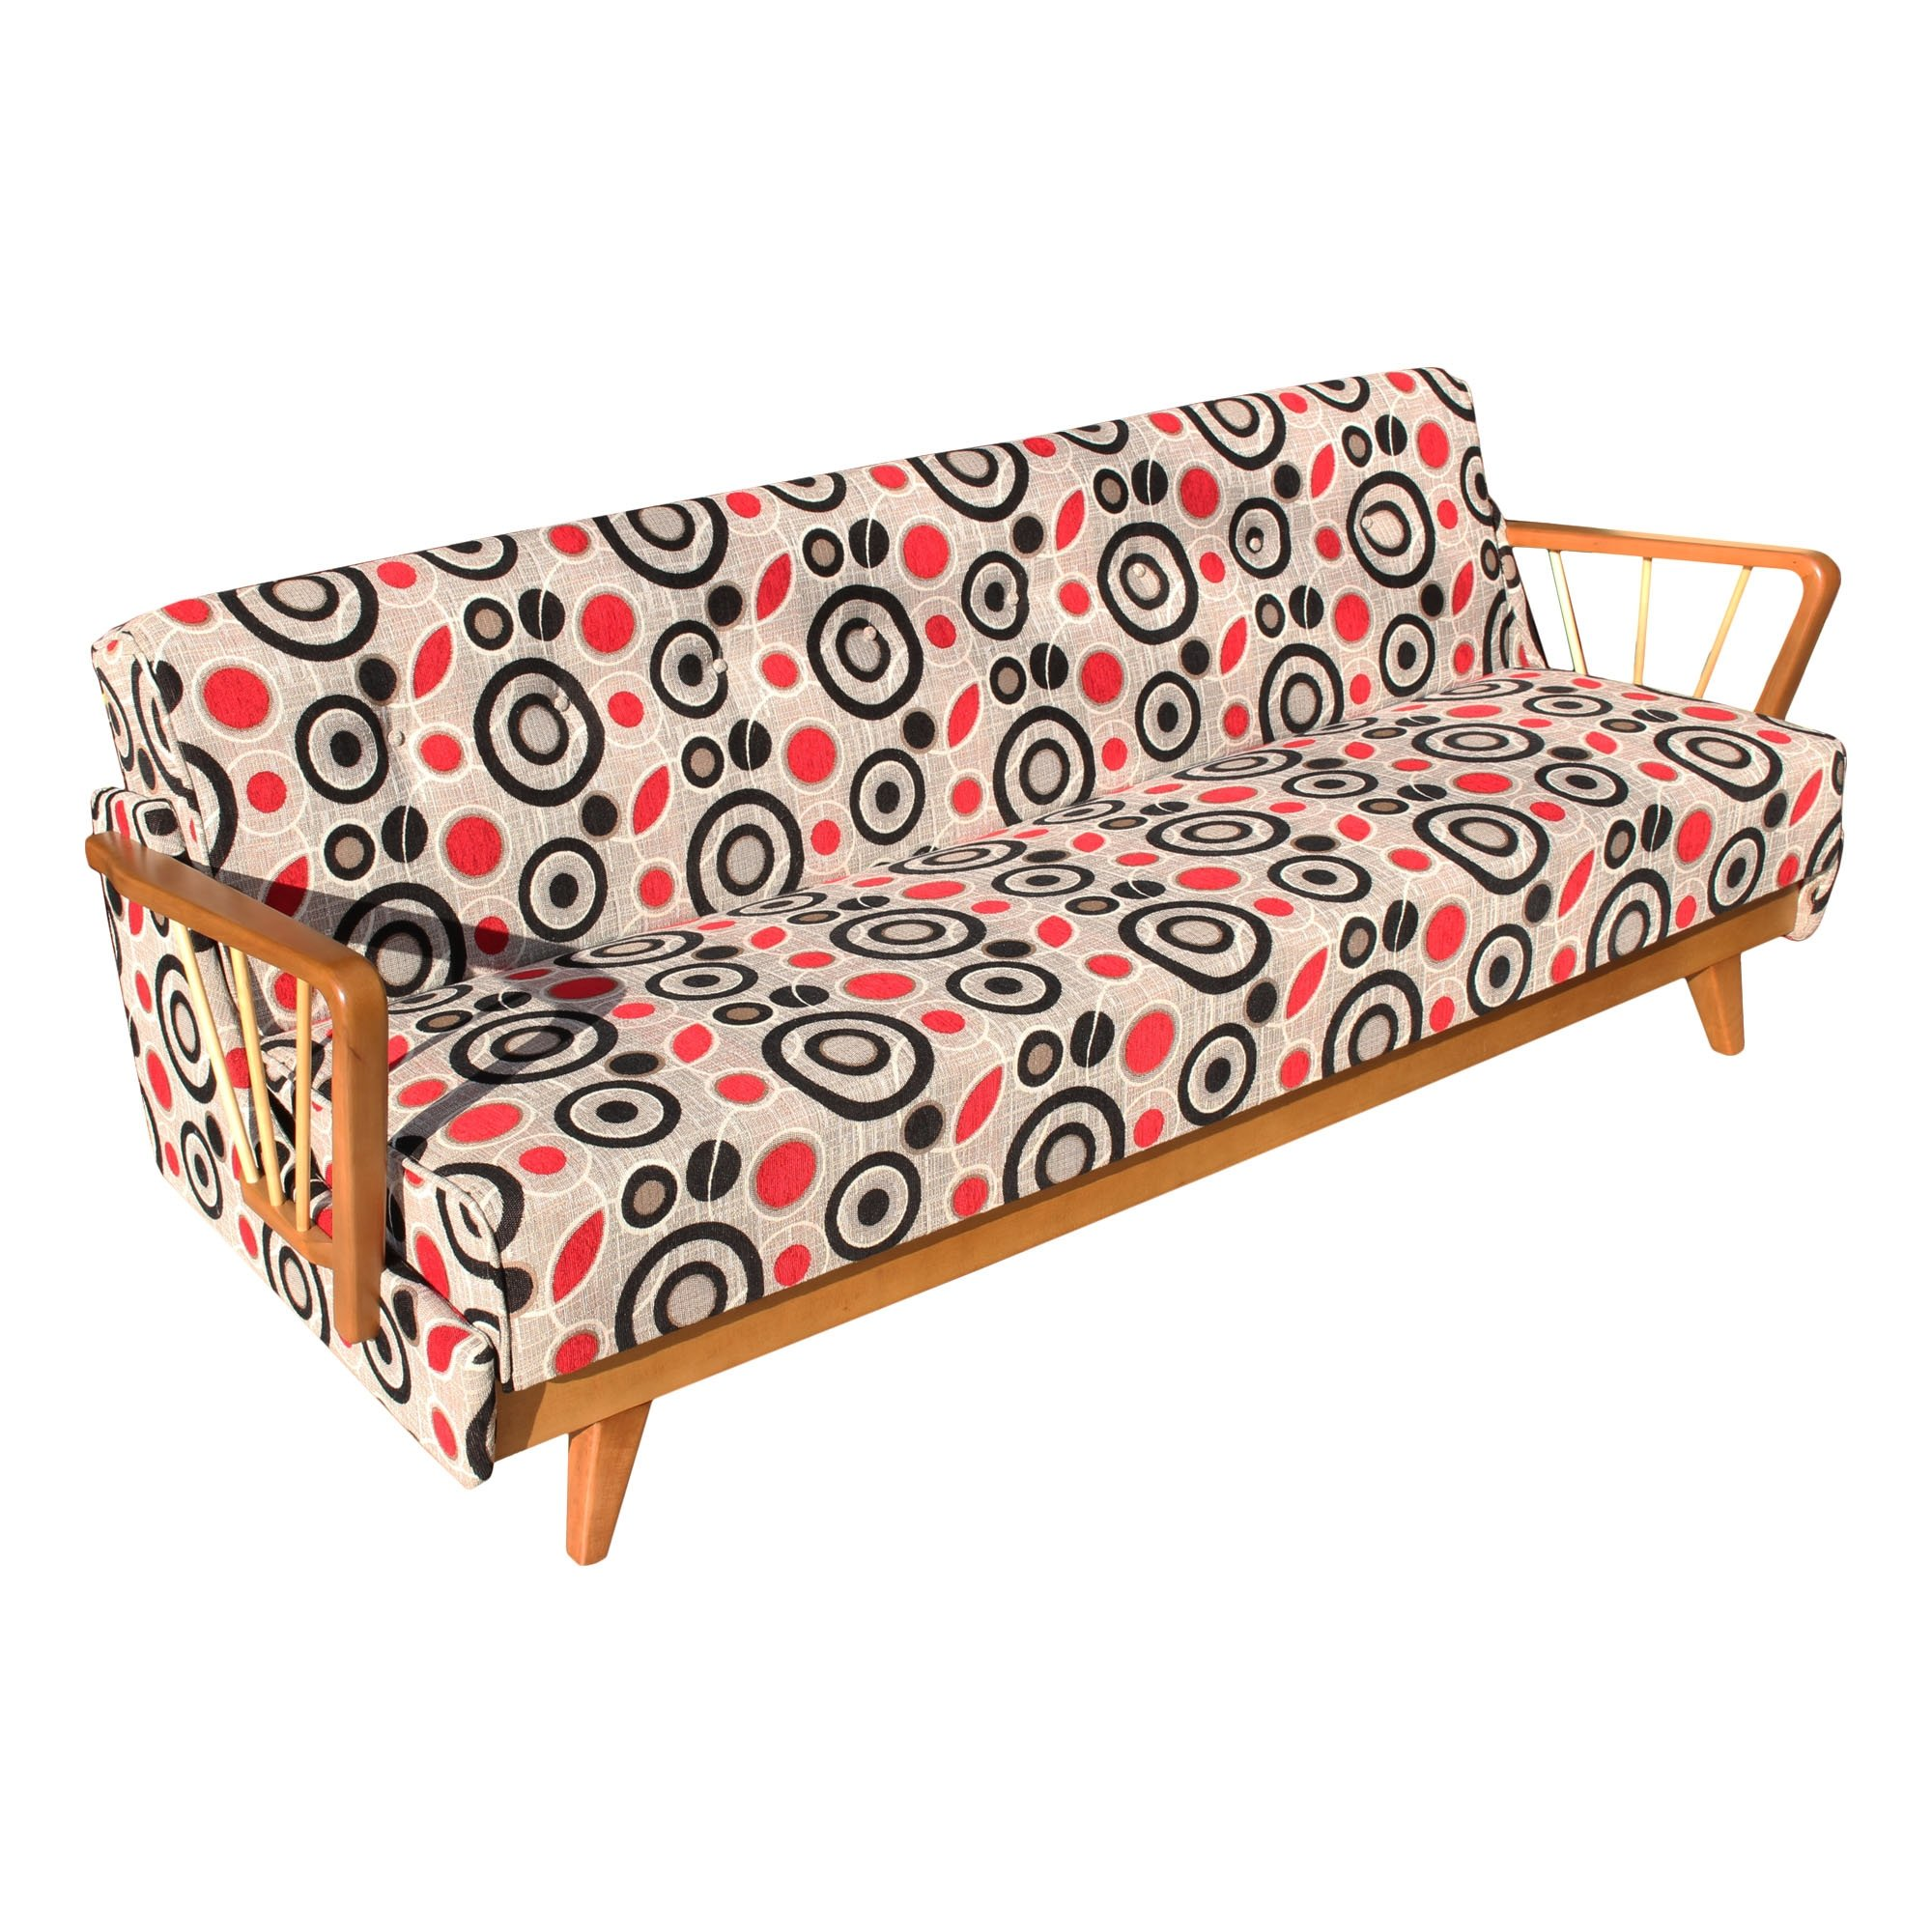 Beautiful space age sofa bed made in germany 67624 for Sofa bed germany